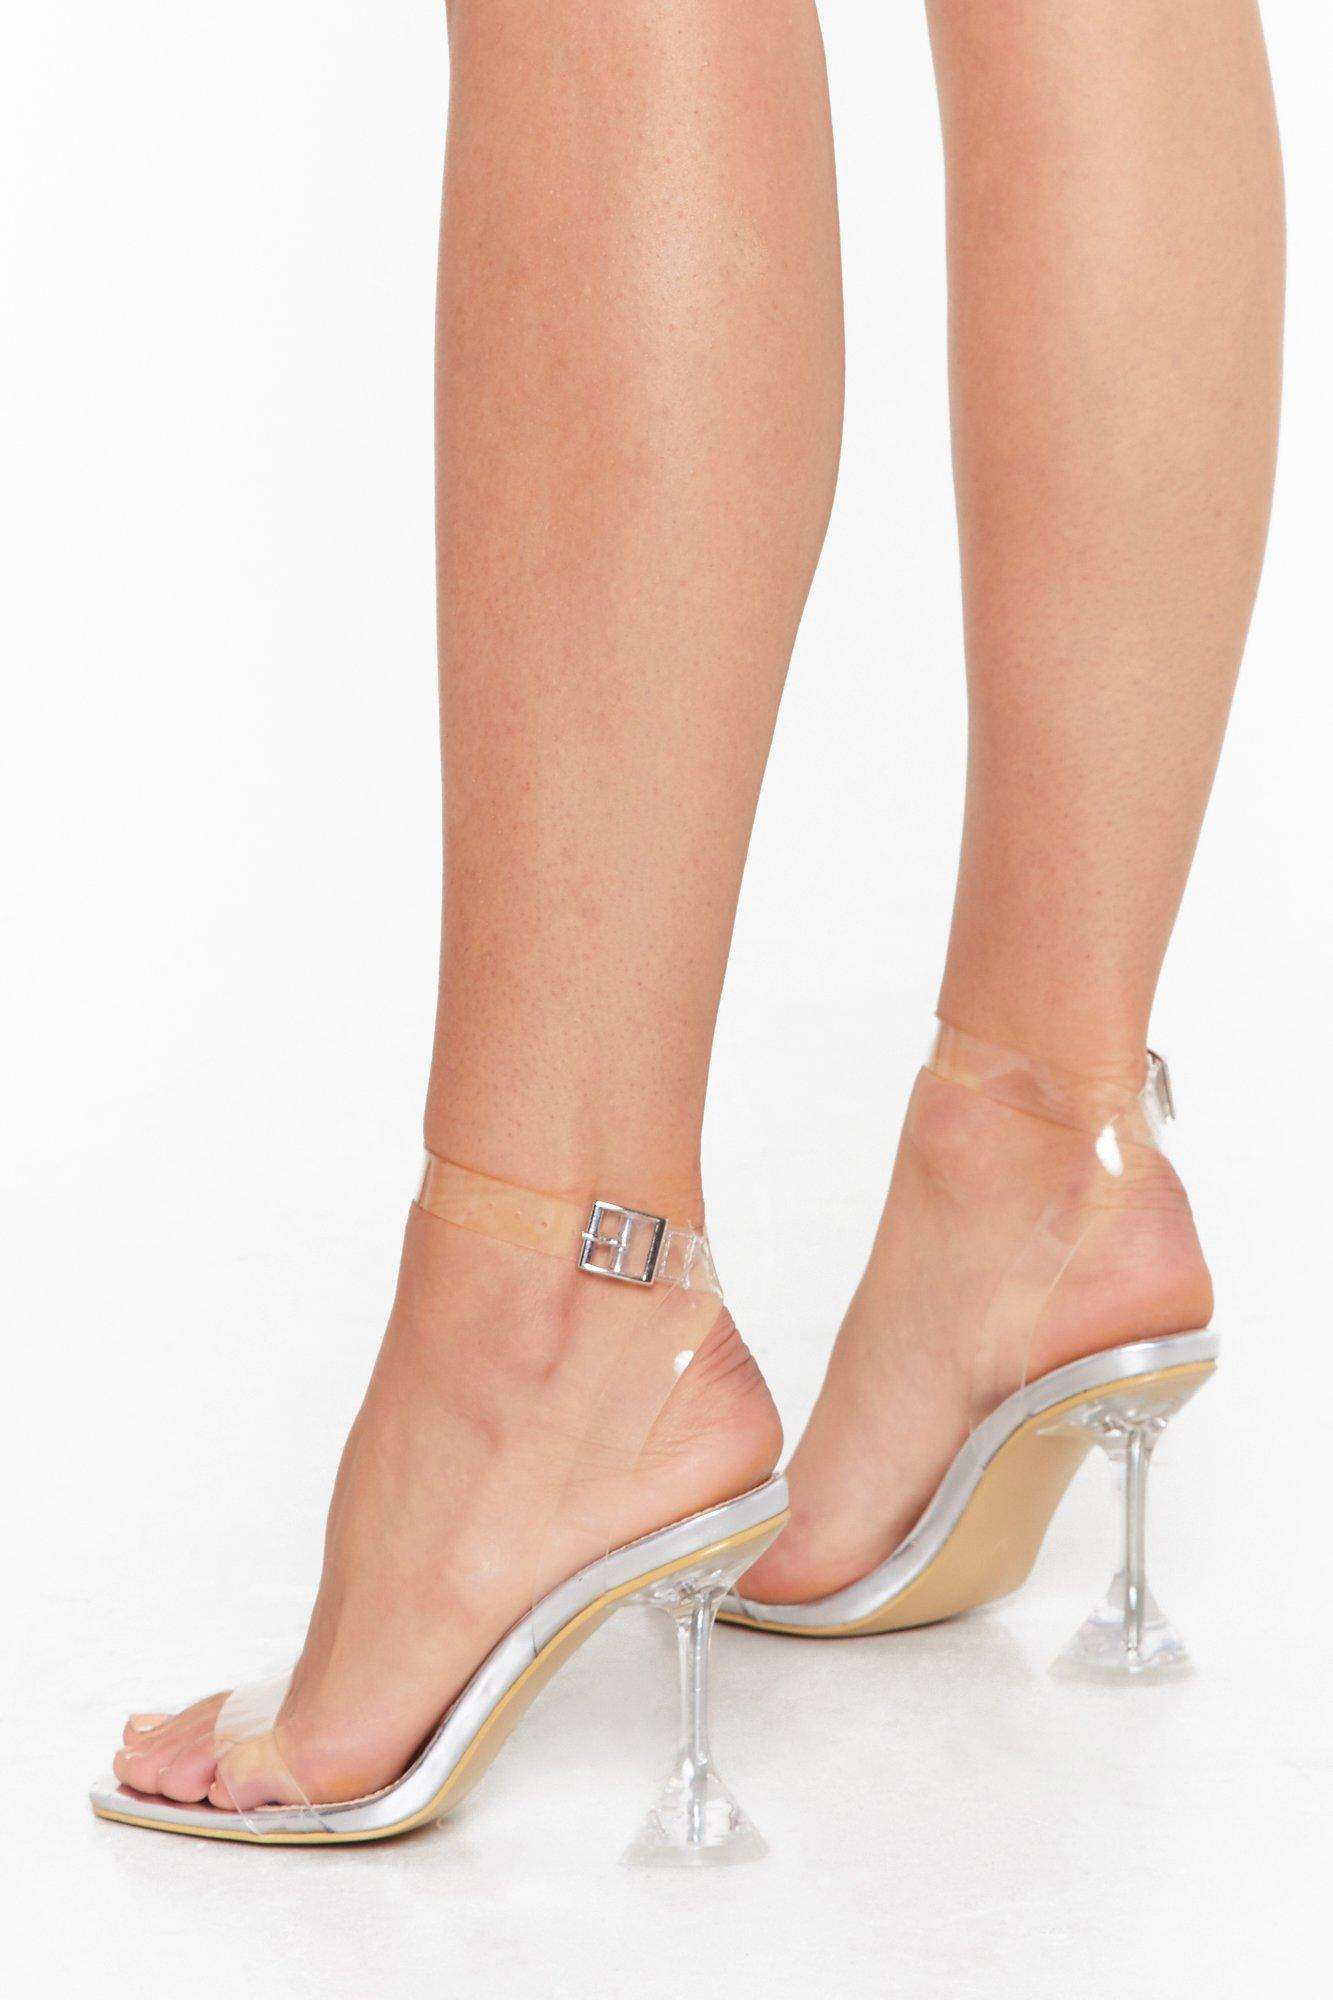 Image of It's All So Clear Now Clear Stiletto Heels